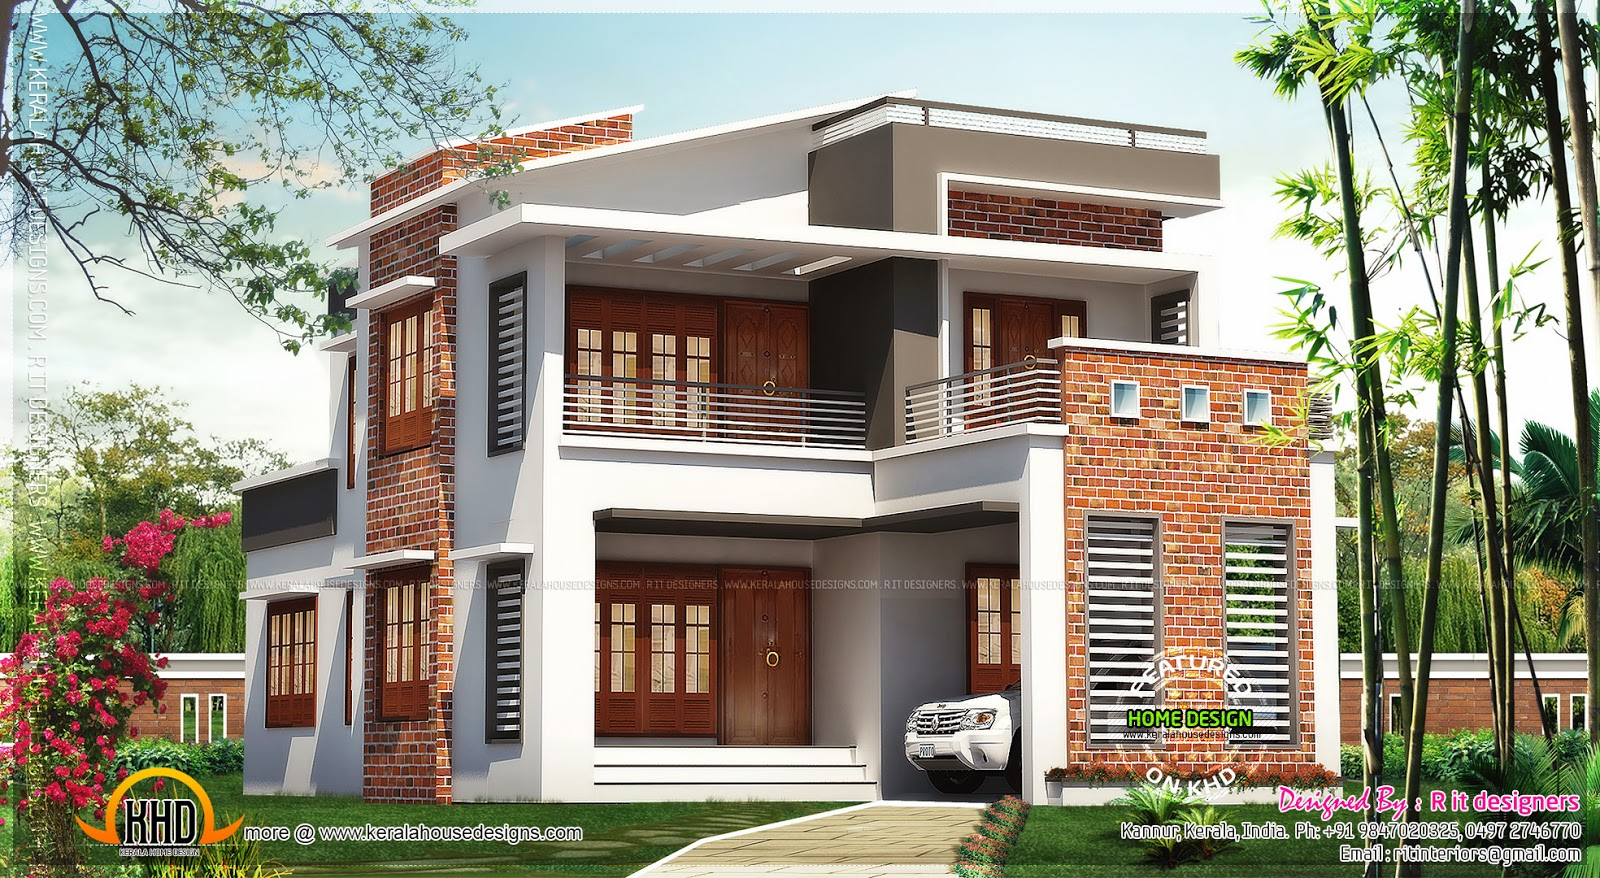 Brick mix house exterior design kerala home design and Indian house exterior design